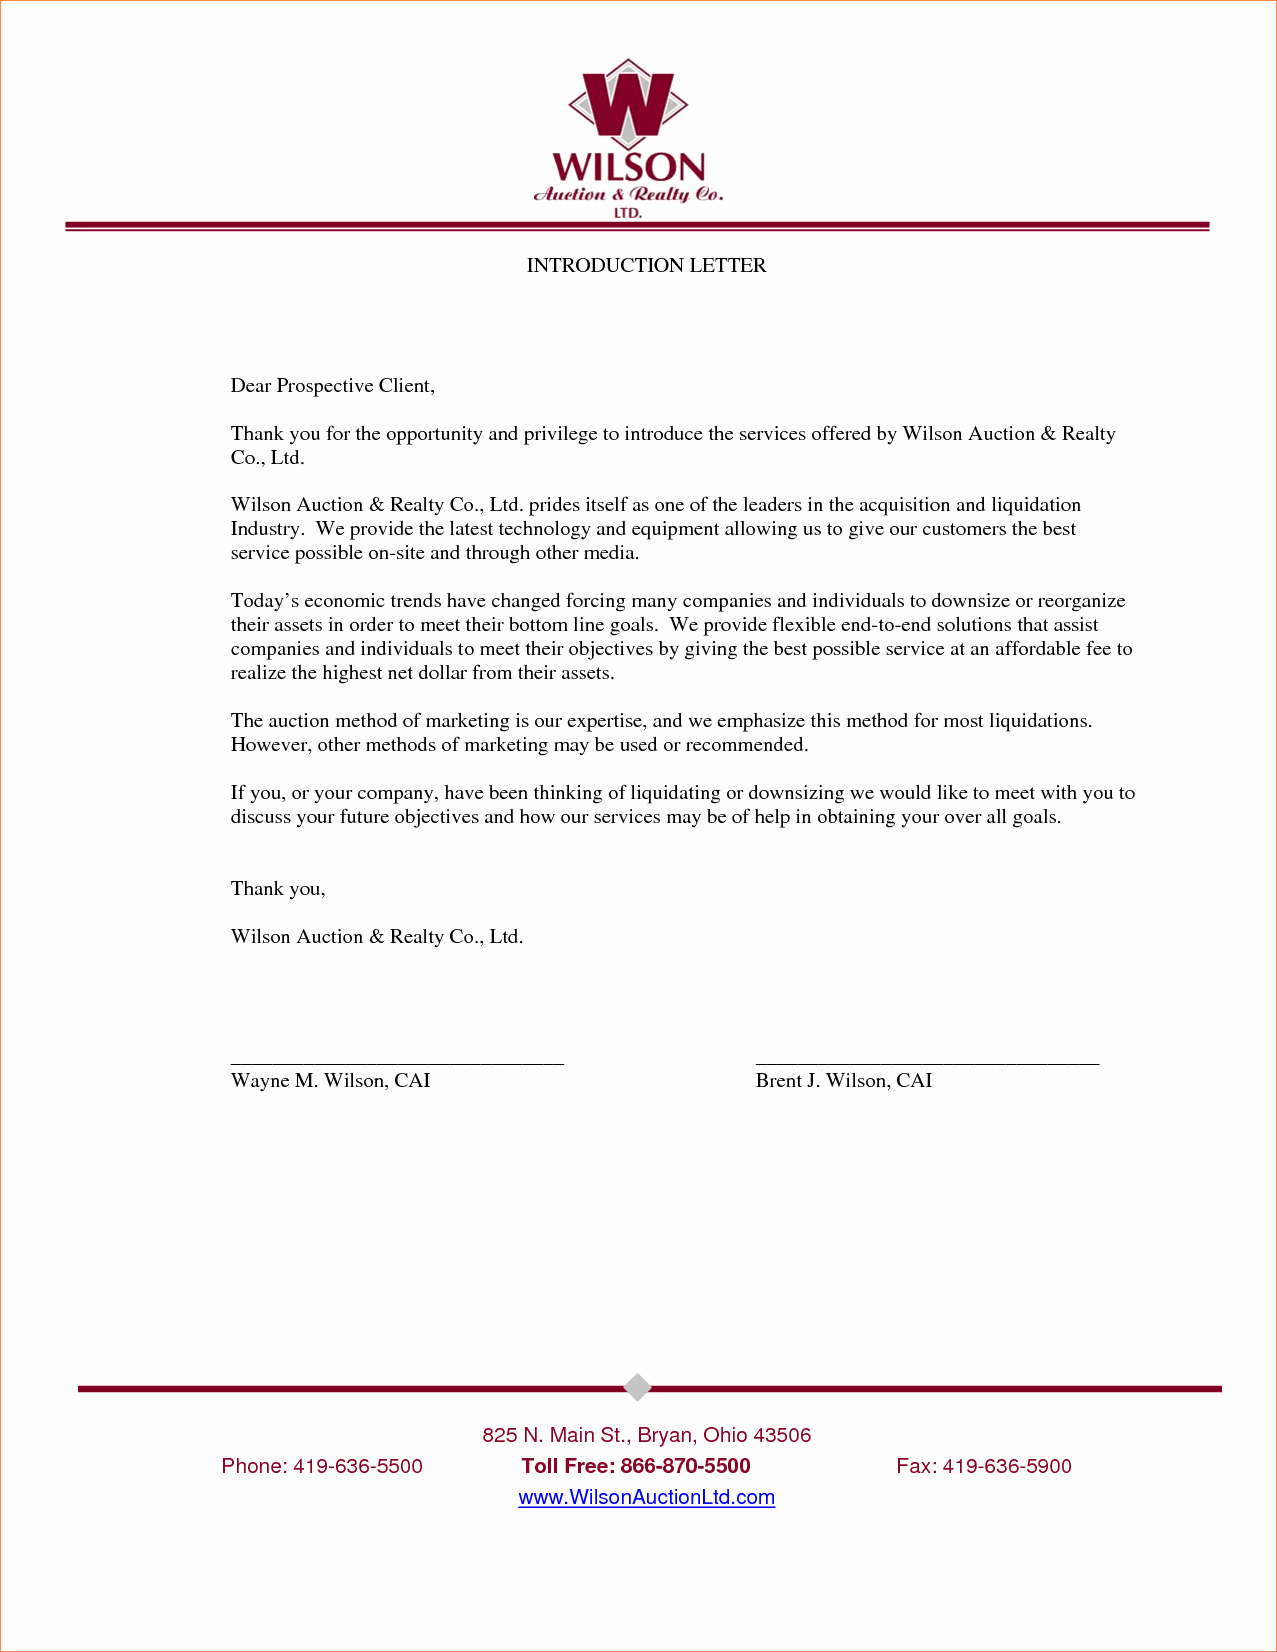 Business Introduction Letter Template New Ell Technologies Line Courses Essay Writing Ell